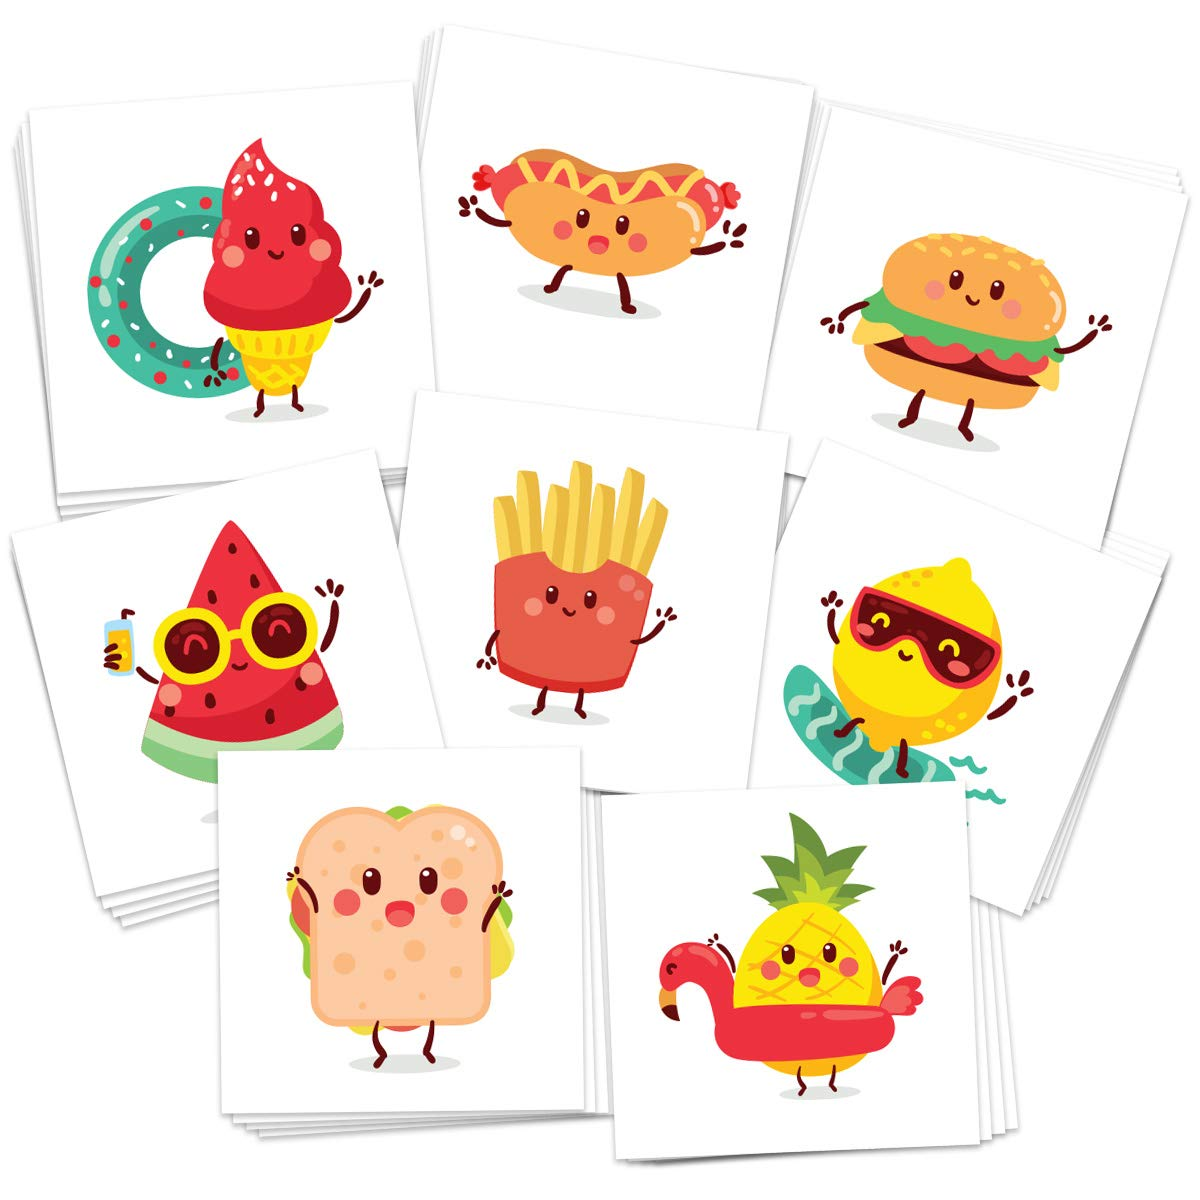 FashionTats Summer Foods Temporary Tattoos | Pack of 32 Tattoos | BBQ - Beach - Pool Party Supplies | Skin Safe | MADE IN THE USA